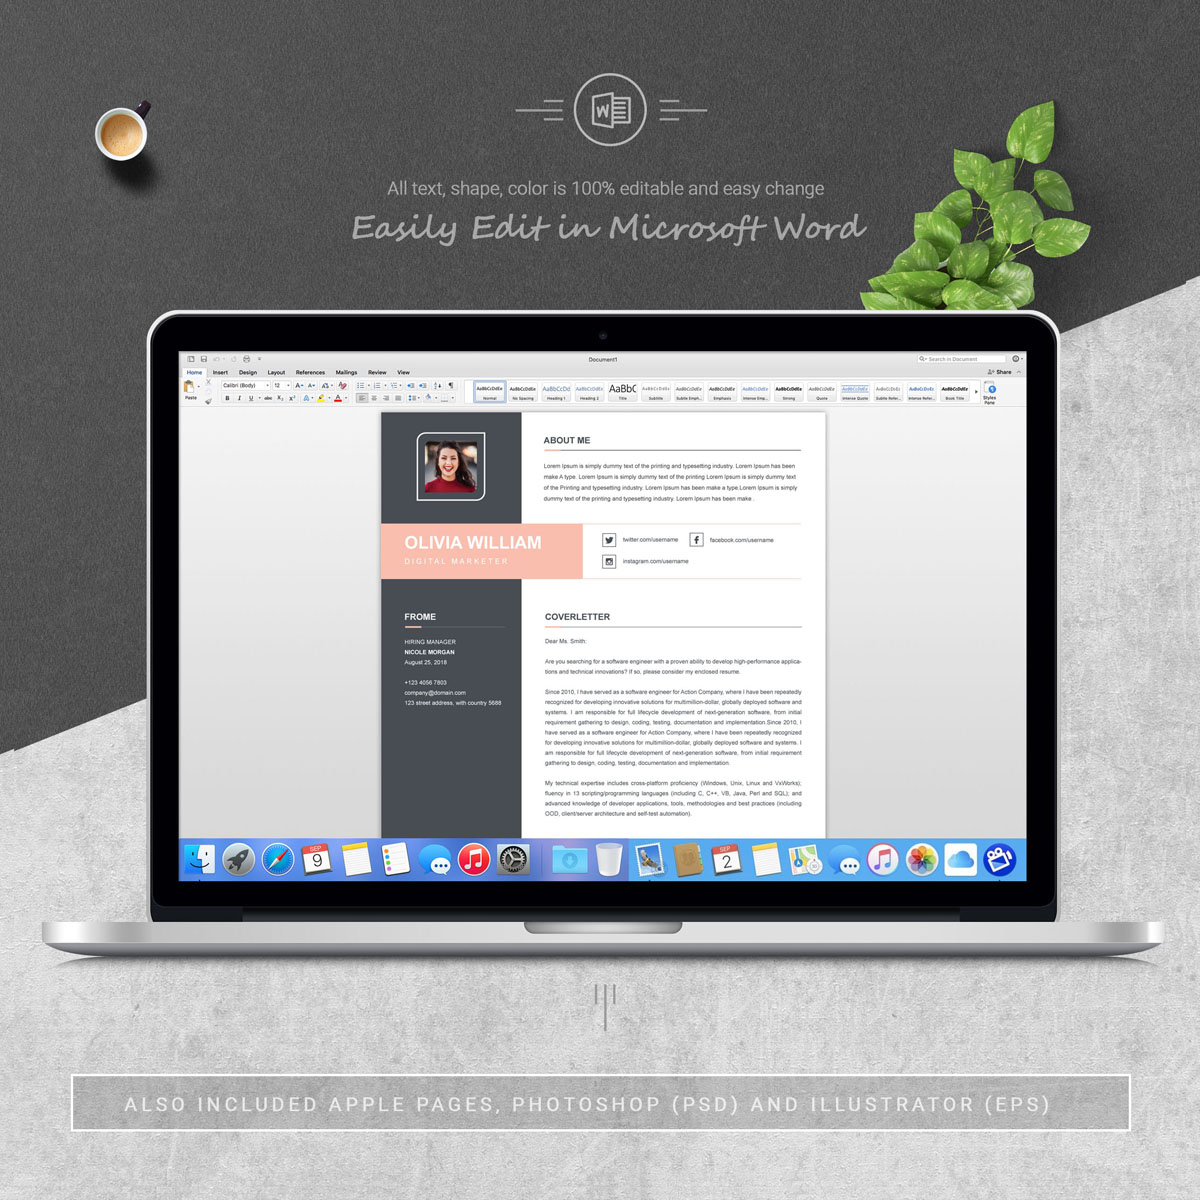 https://s3.tmimgcdn.com/templates/25423/scr/1564412082102_04_3%20Pages%20Free%20Resume%20MS%20Word%20File%20Format%20Design%20Template.jpg